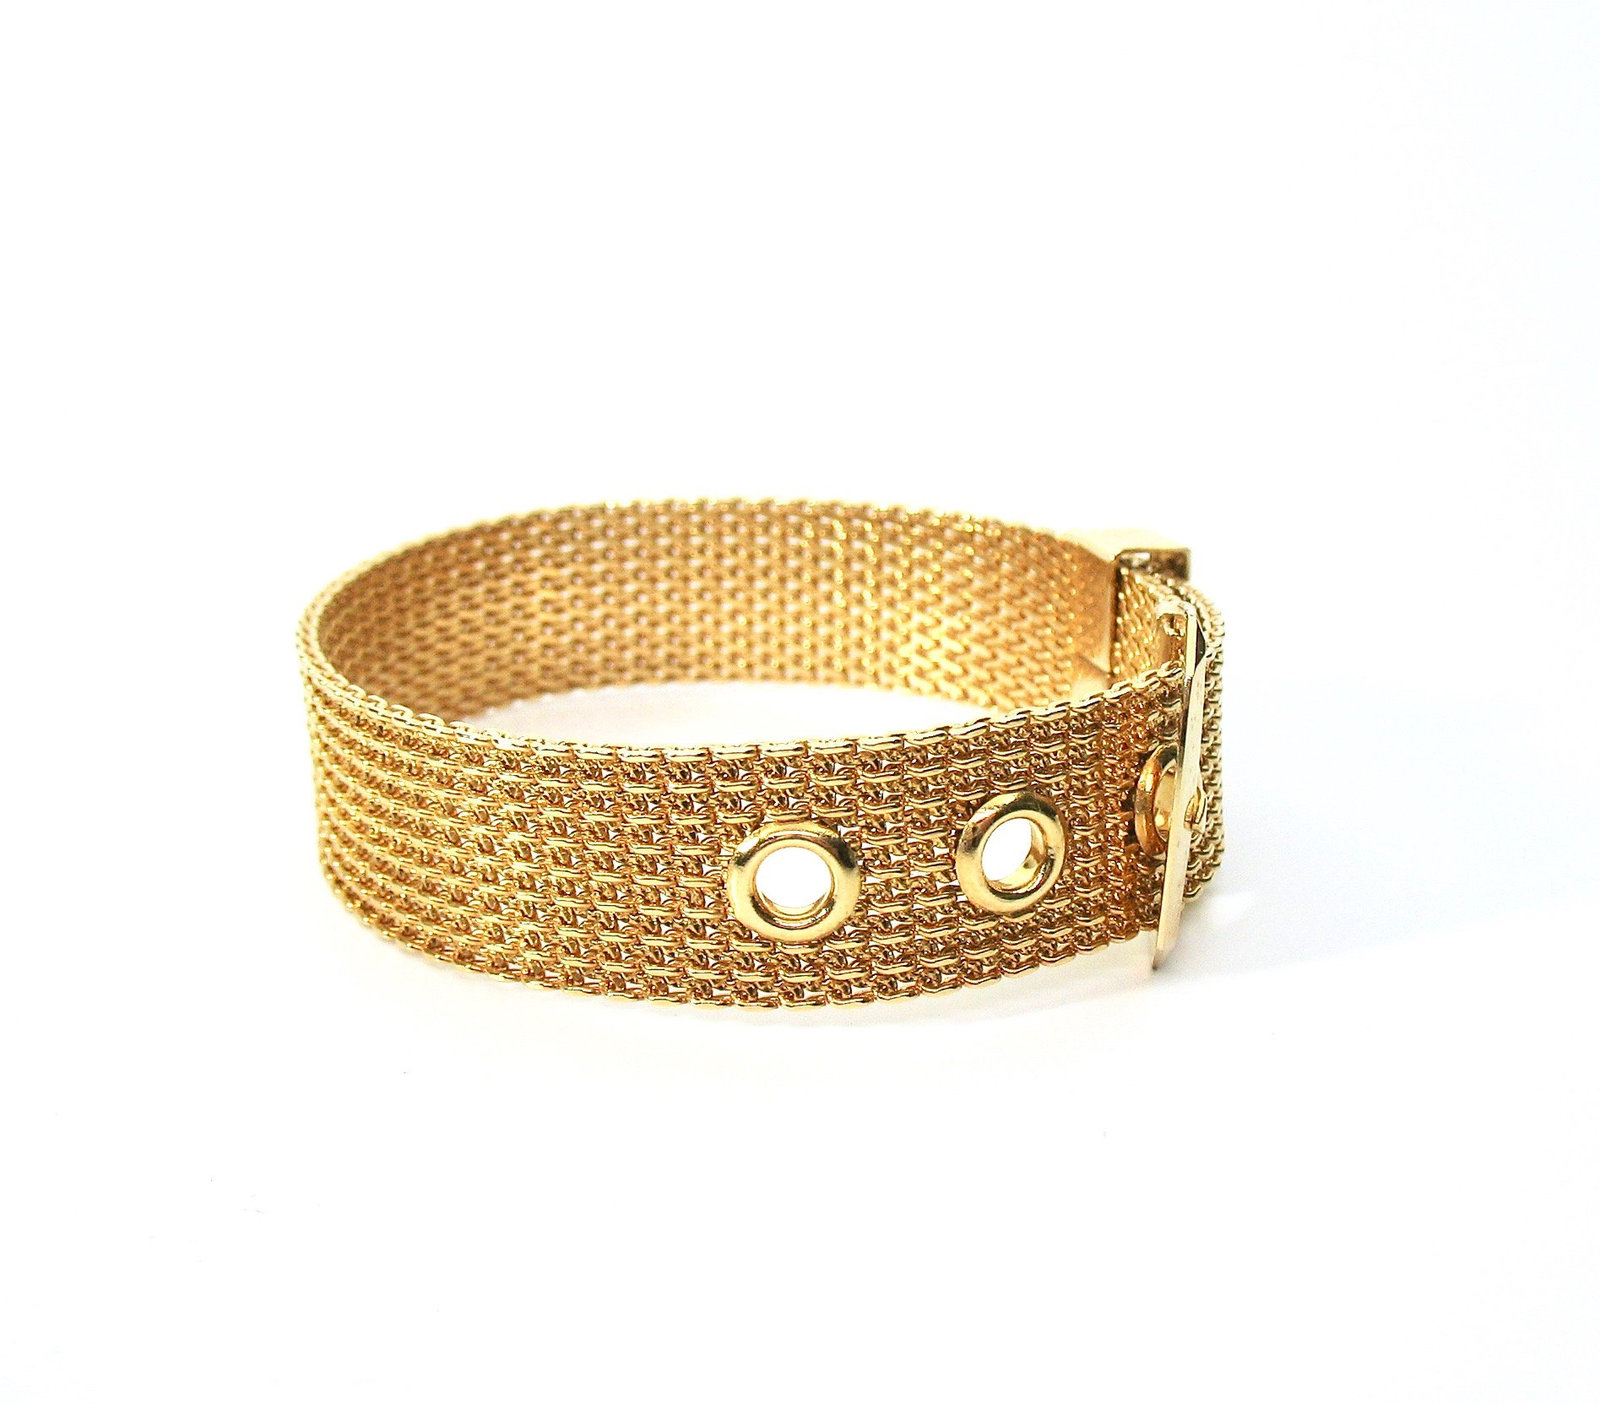 Mesh Buckle Bracelet, Gold Tone, Avon, 1970's, Adjustable, Signed Collectible, D image 5